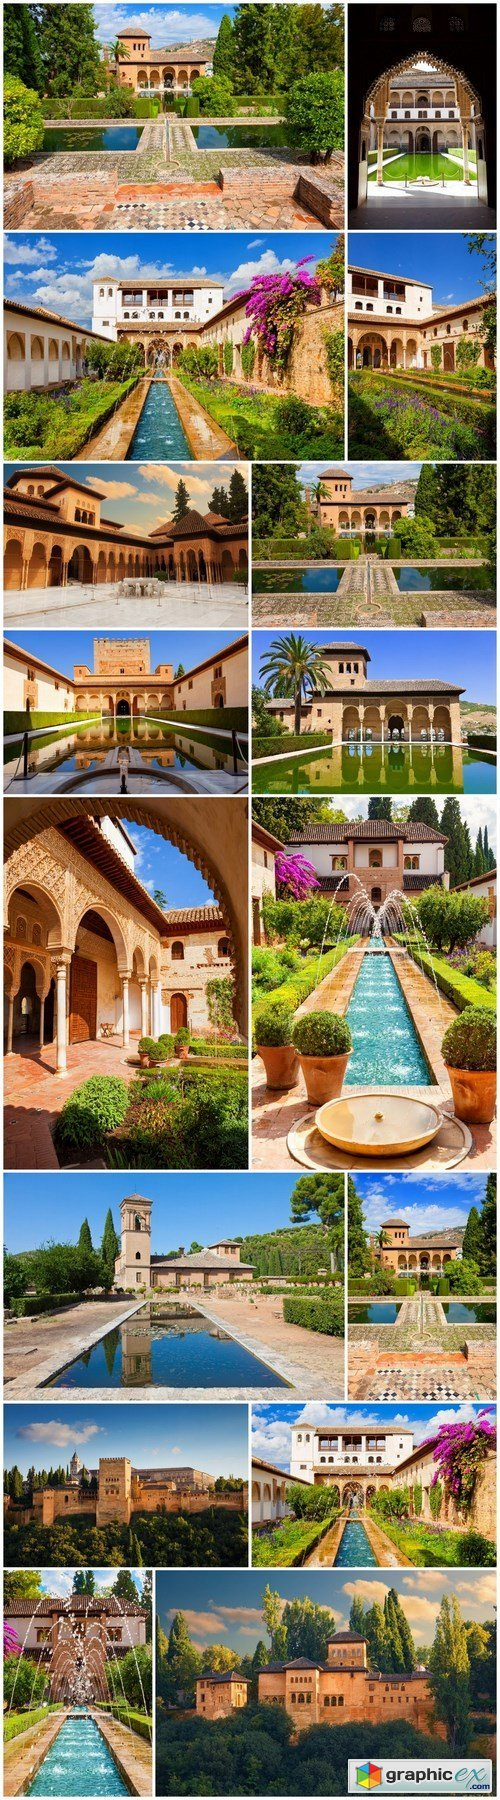 Beauty of Alhambra de Granada - 16xUHQ JPEG